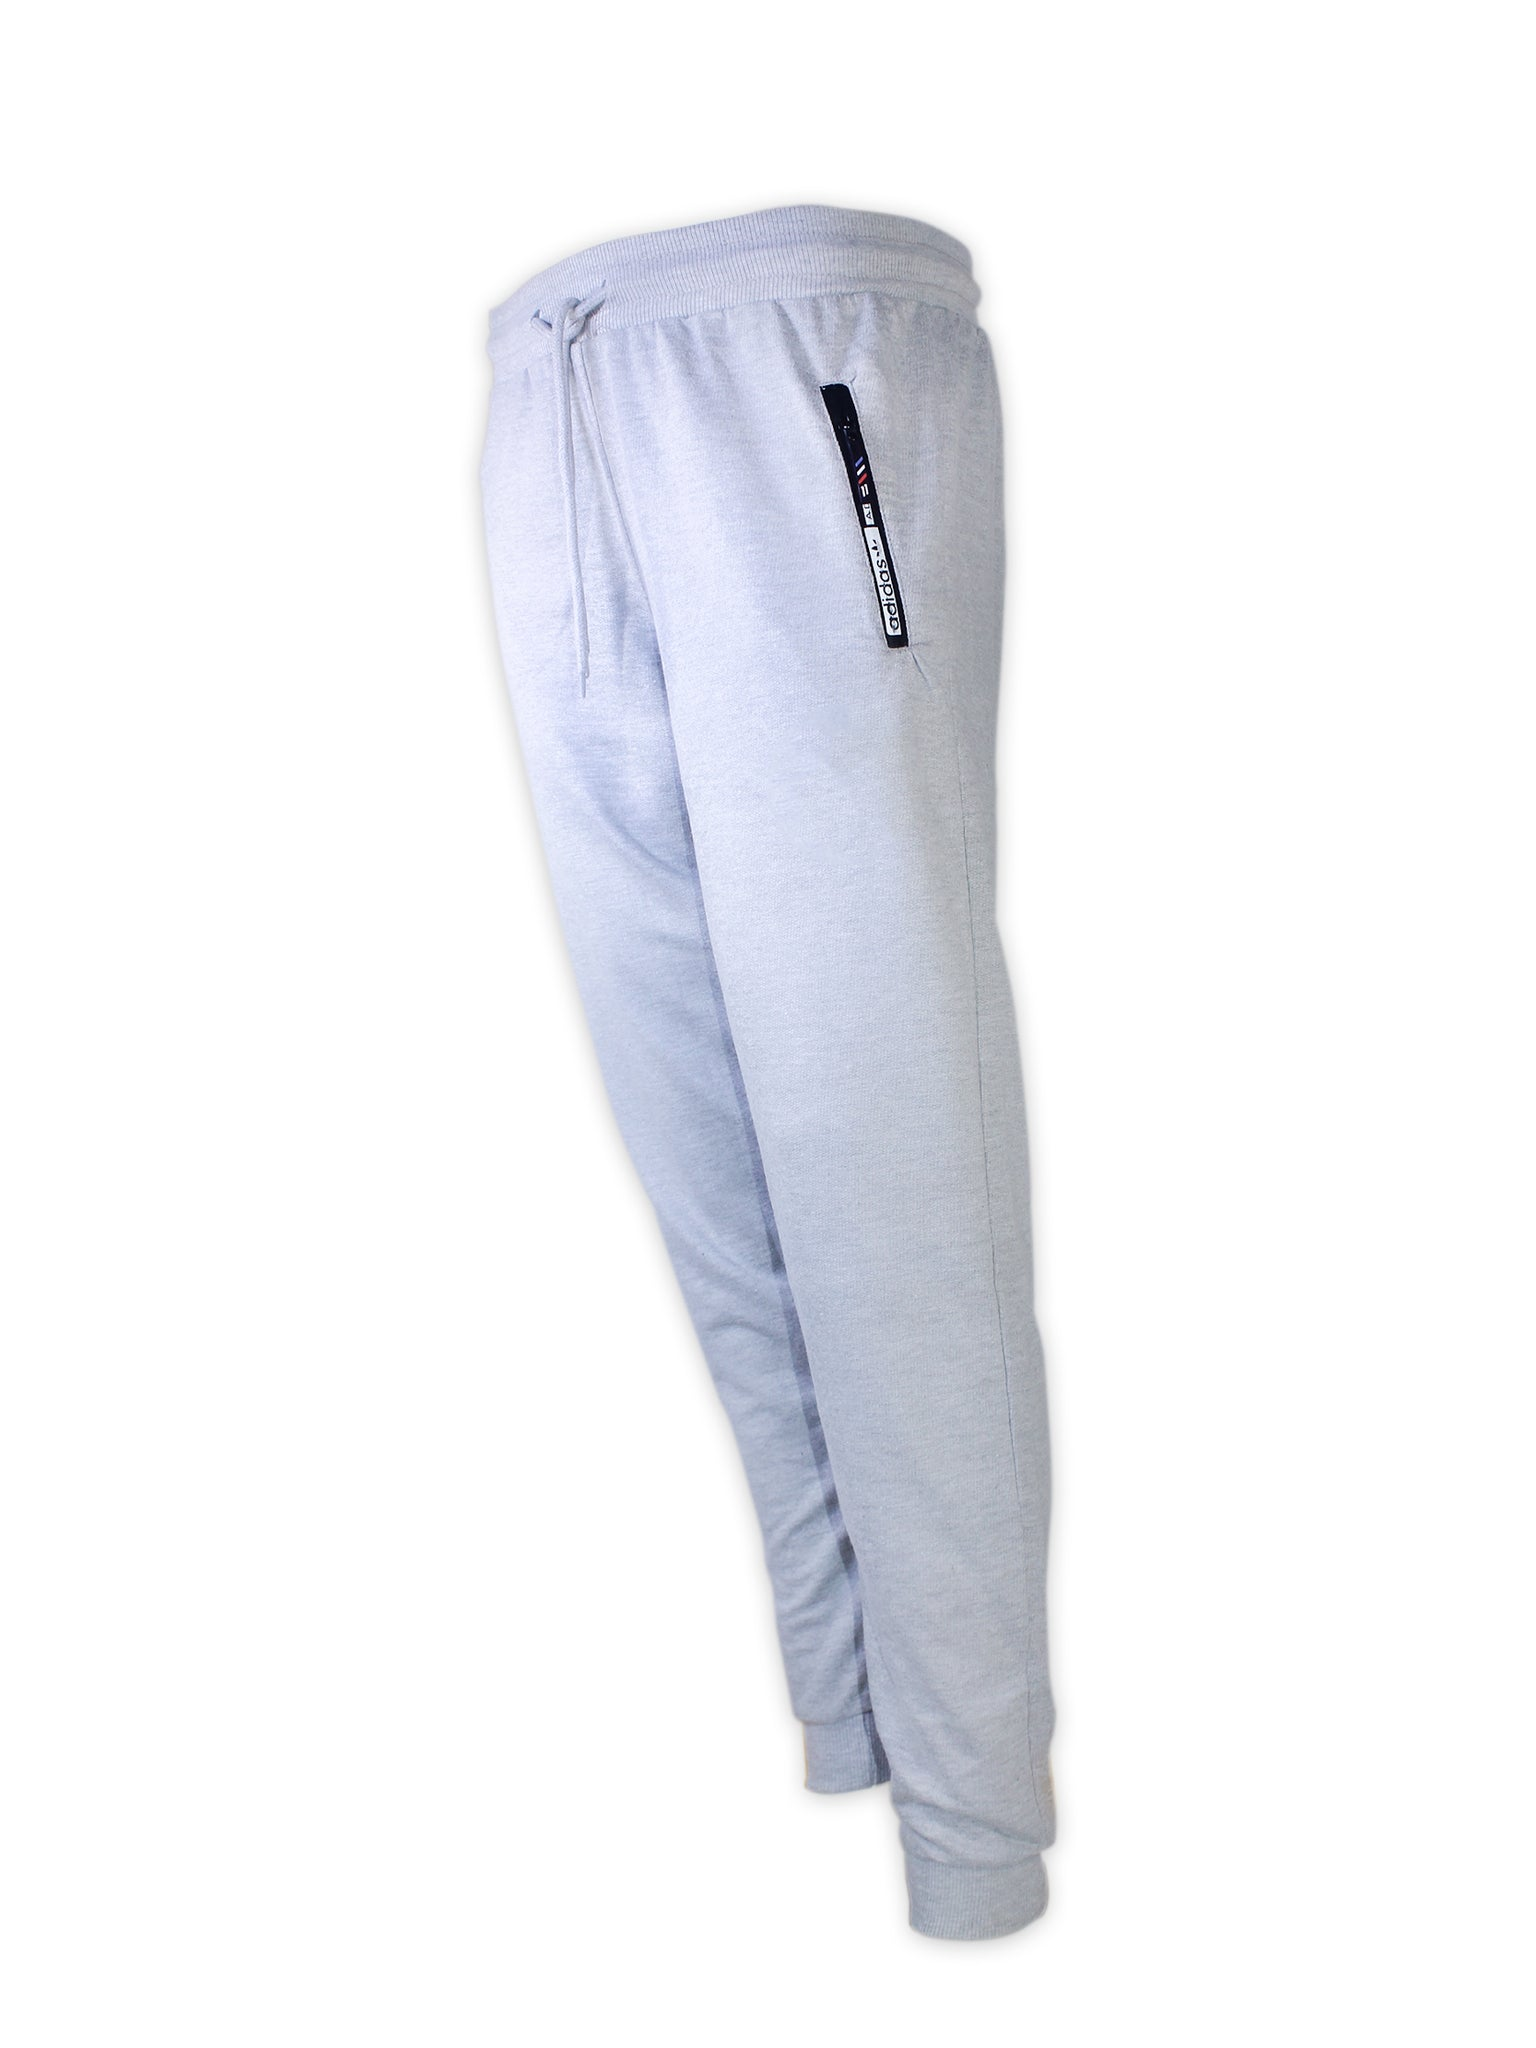 Casual Trouser for Men White Grey